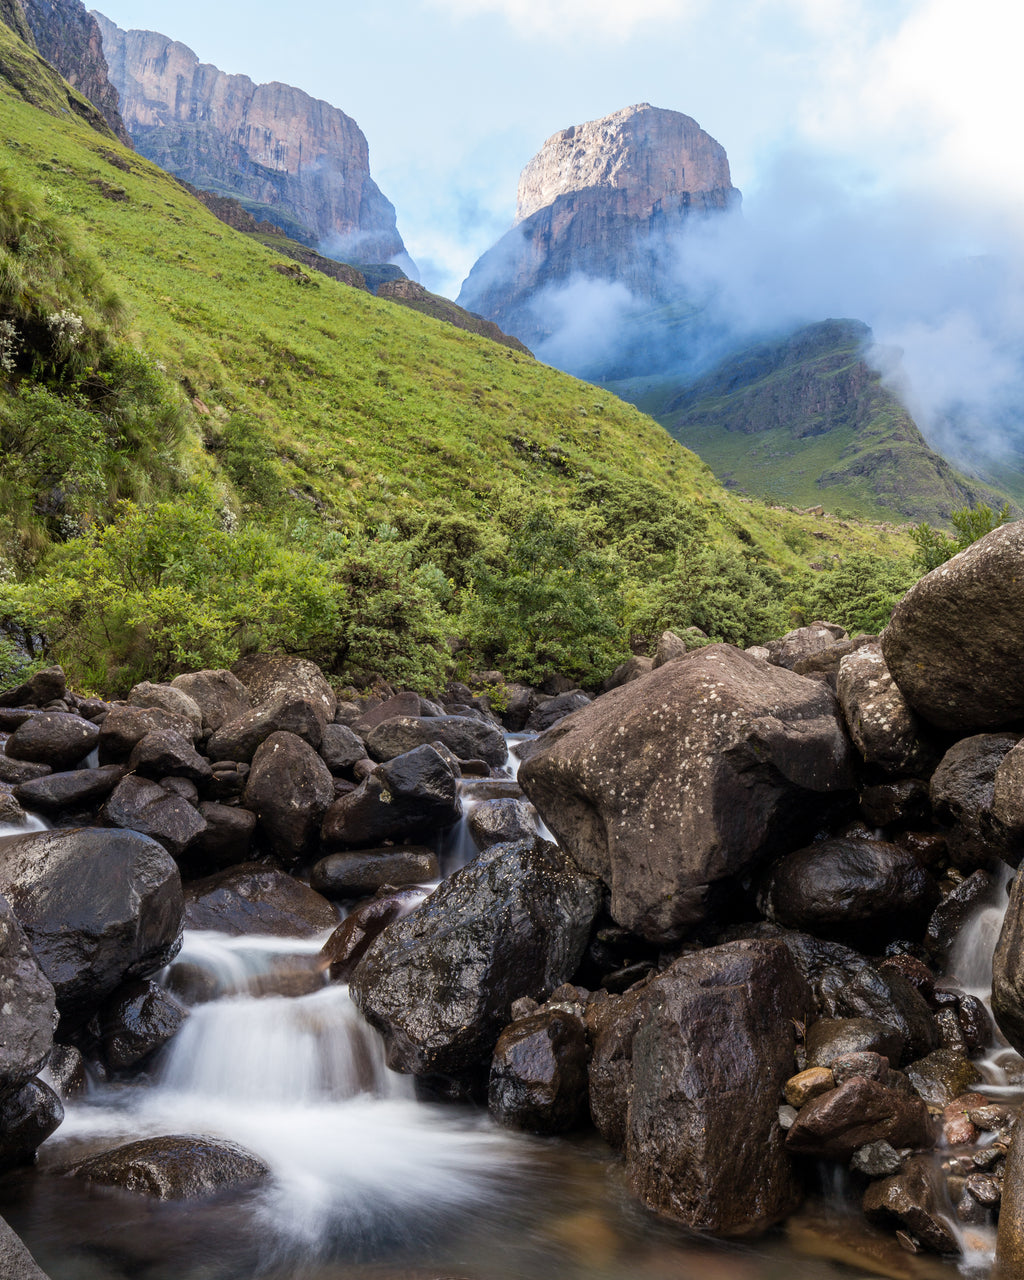 Small creek with a little waterfall in the Central Drakensberg mountains